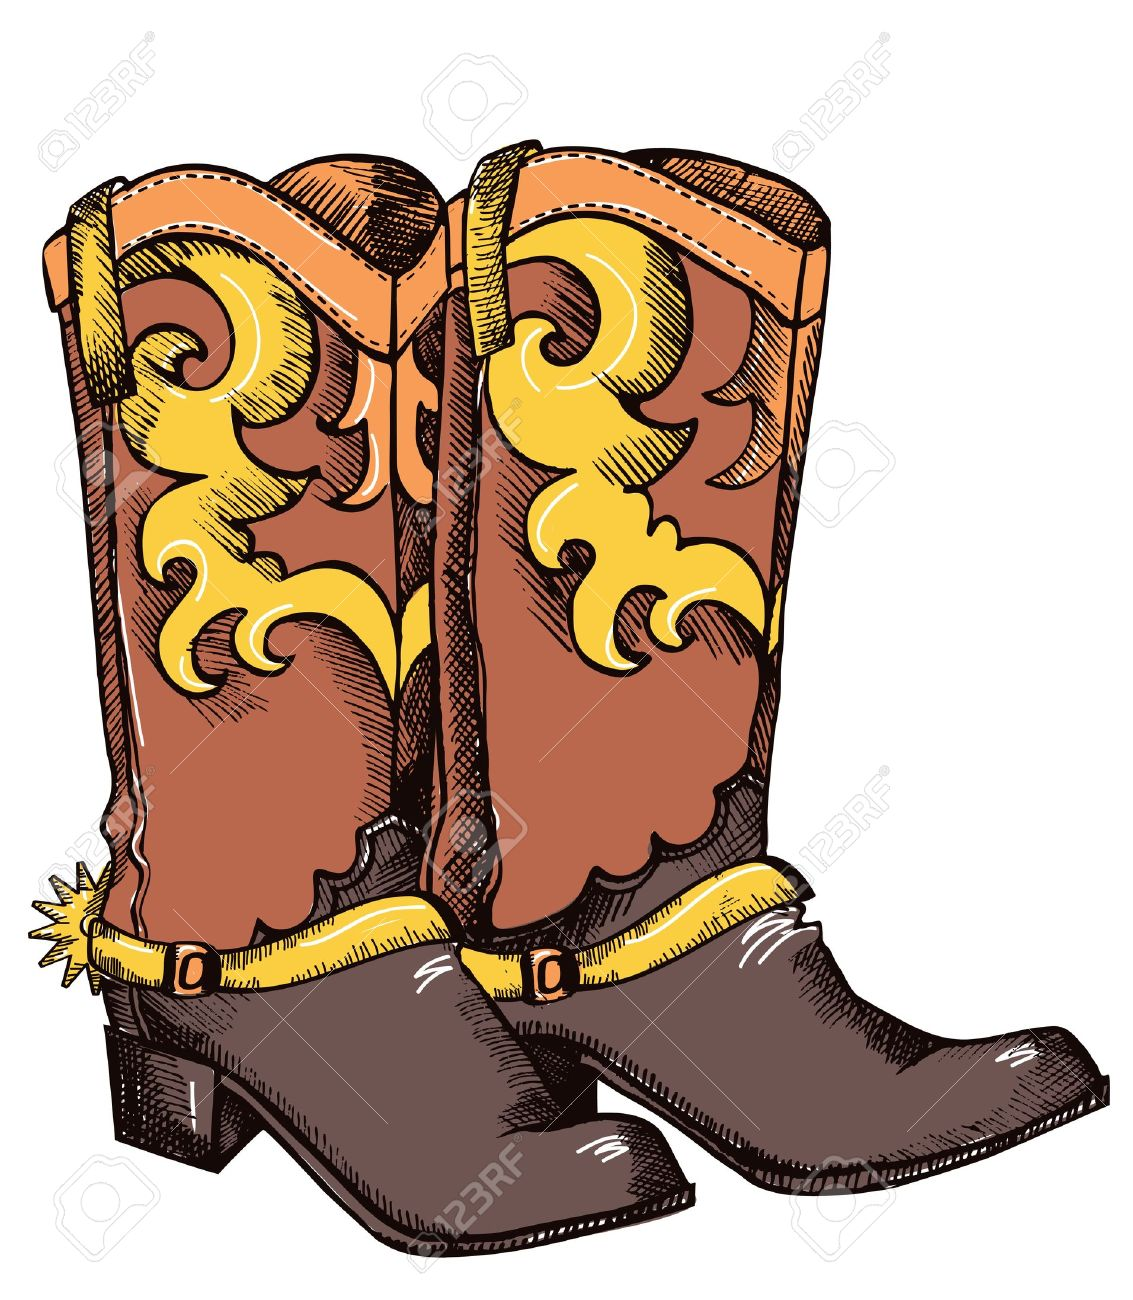 Coloring pictures of cowboy boots - Cowboy Boots Cowboy Boots Vector Color Image Of Shoes For Cowboy Life